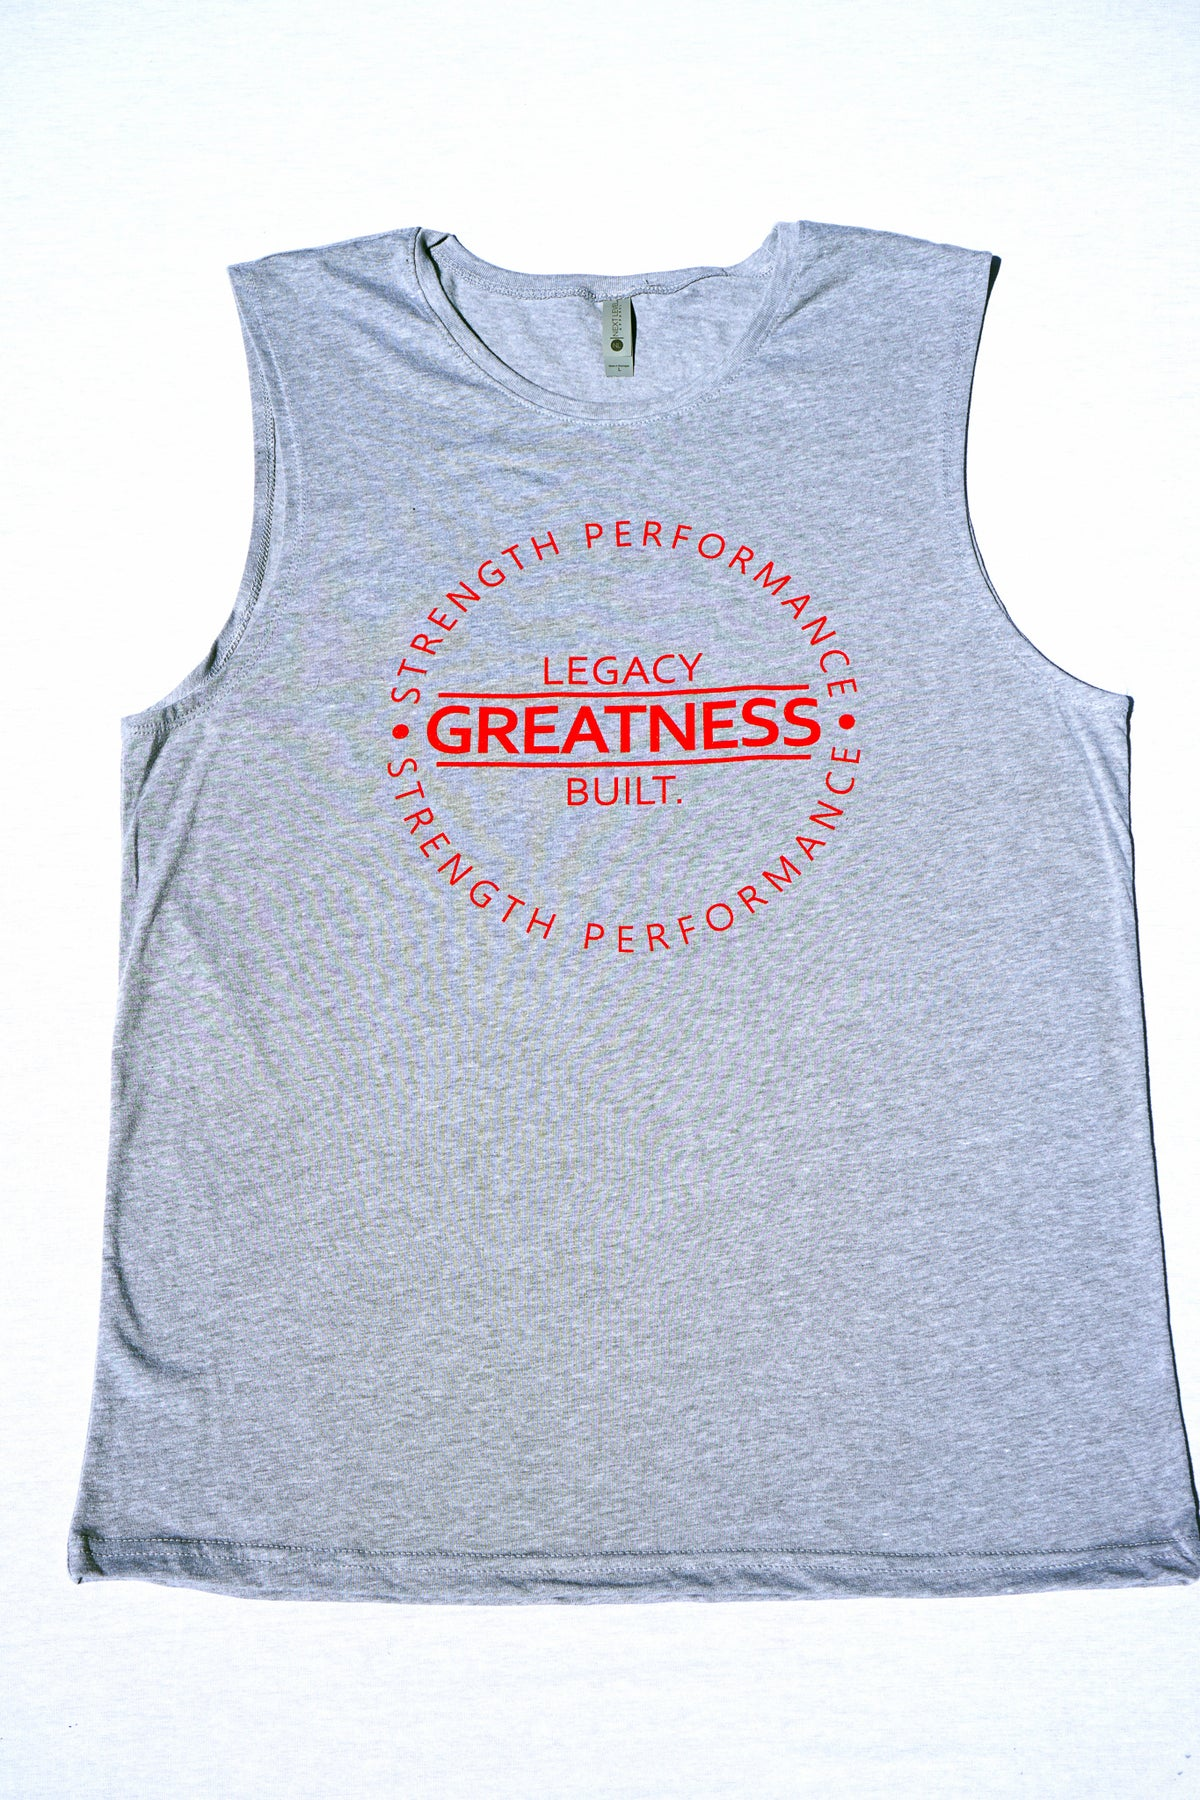 GREATNESS SLEEVELESS TANK - HEATHER GREY - LEGACY BUILT. APPAREL